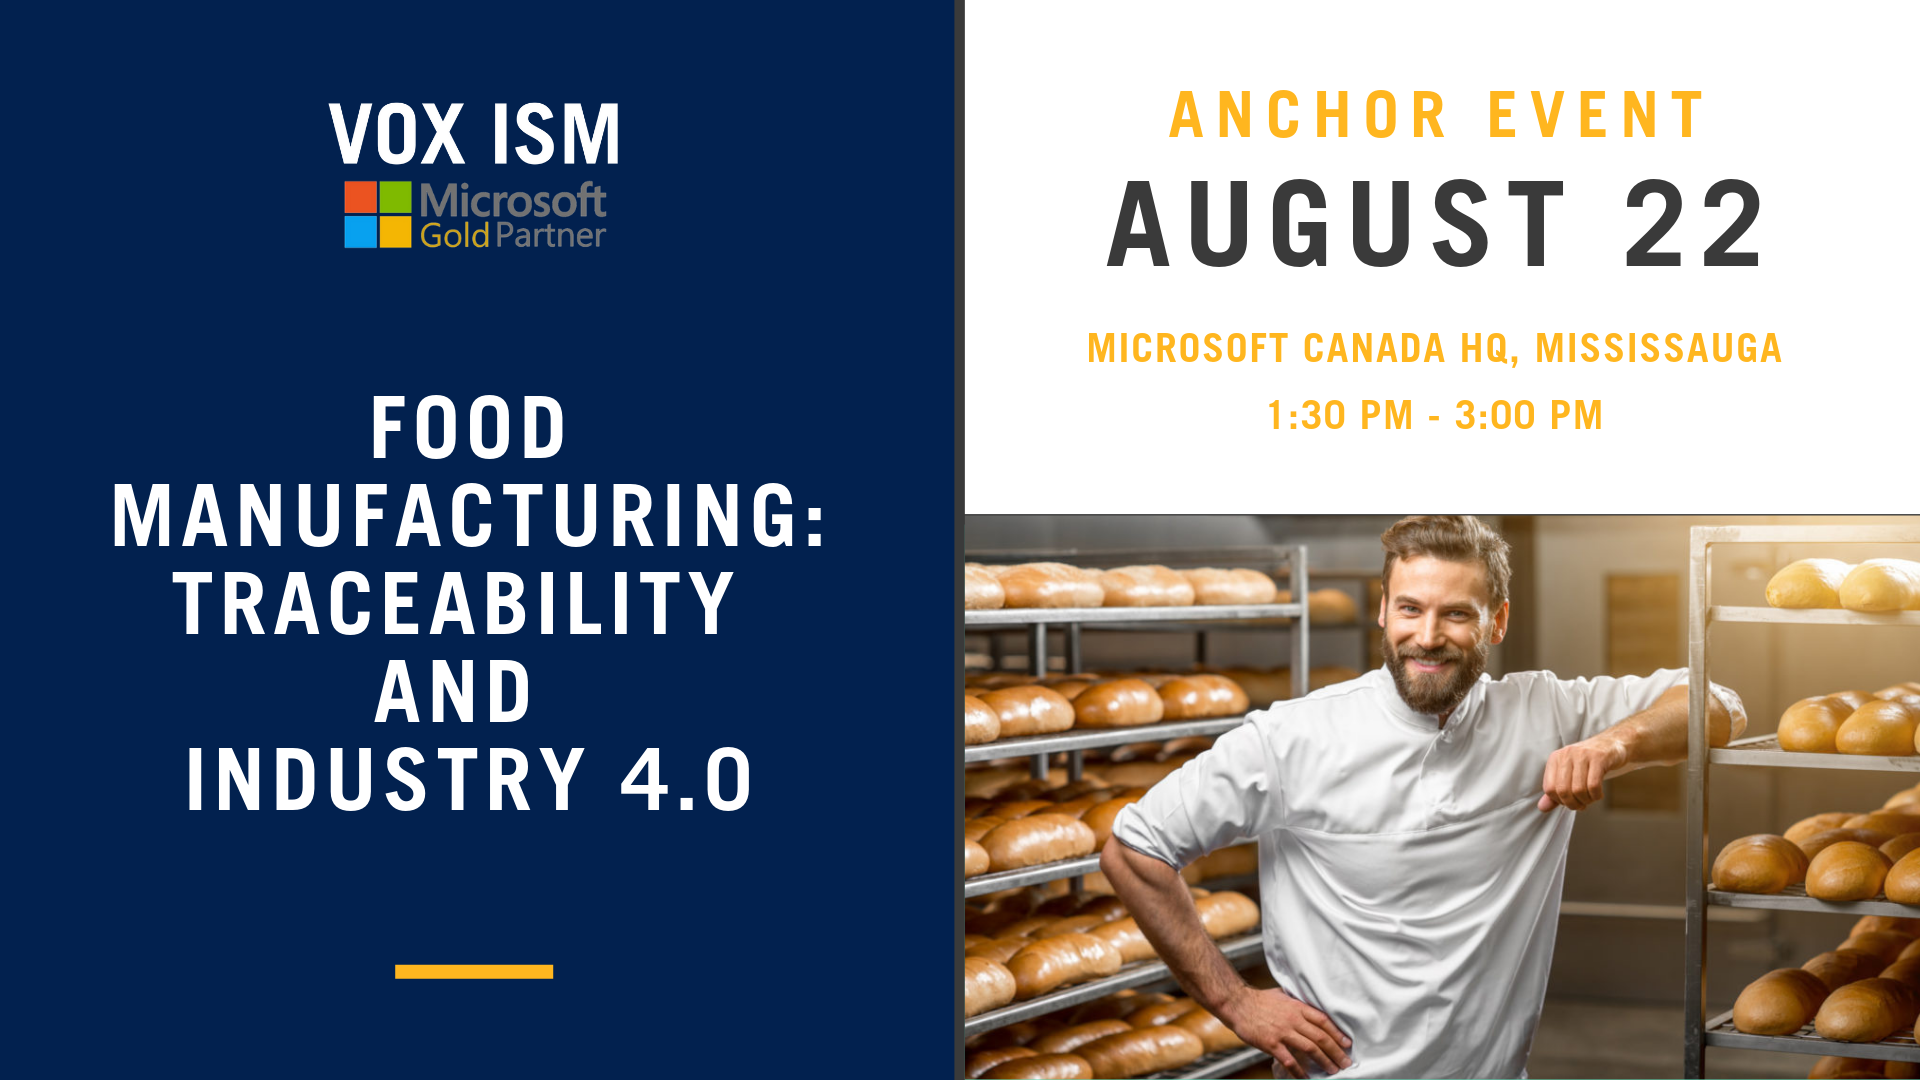 Food Manufacturing: Traceability and Industry 4.0 - August 22 - Anchor Event - VOX ISM